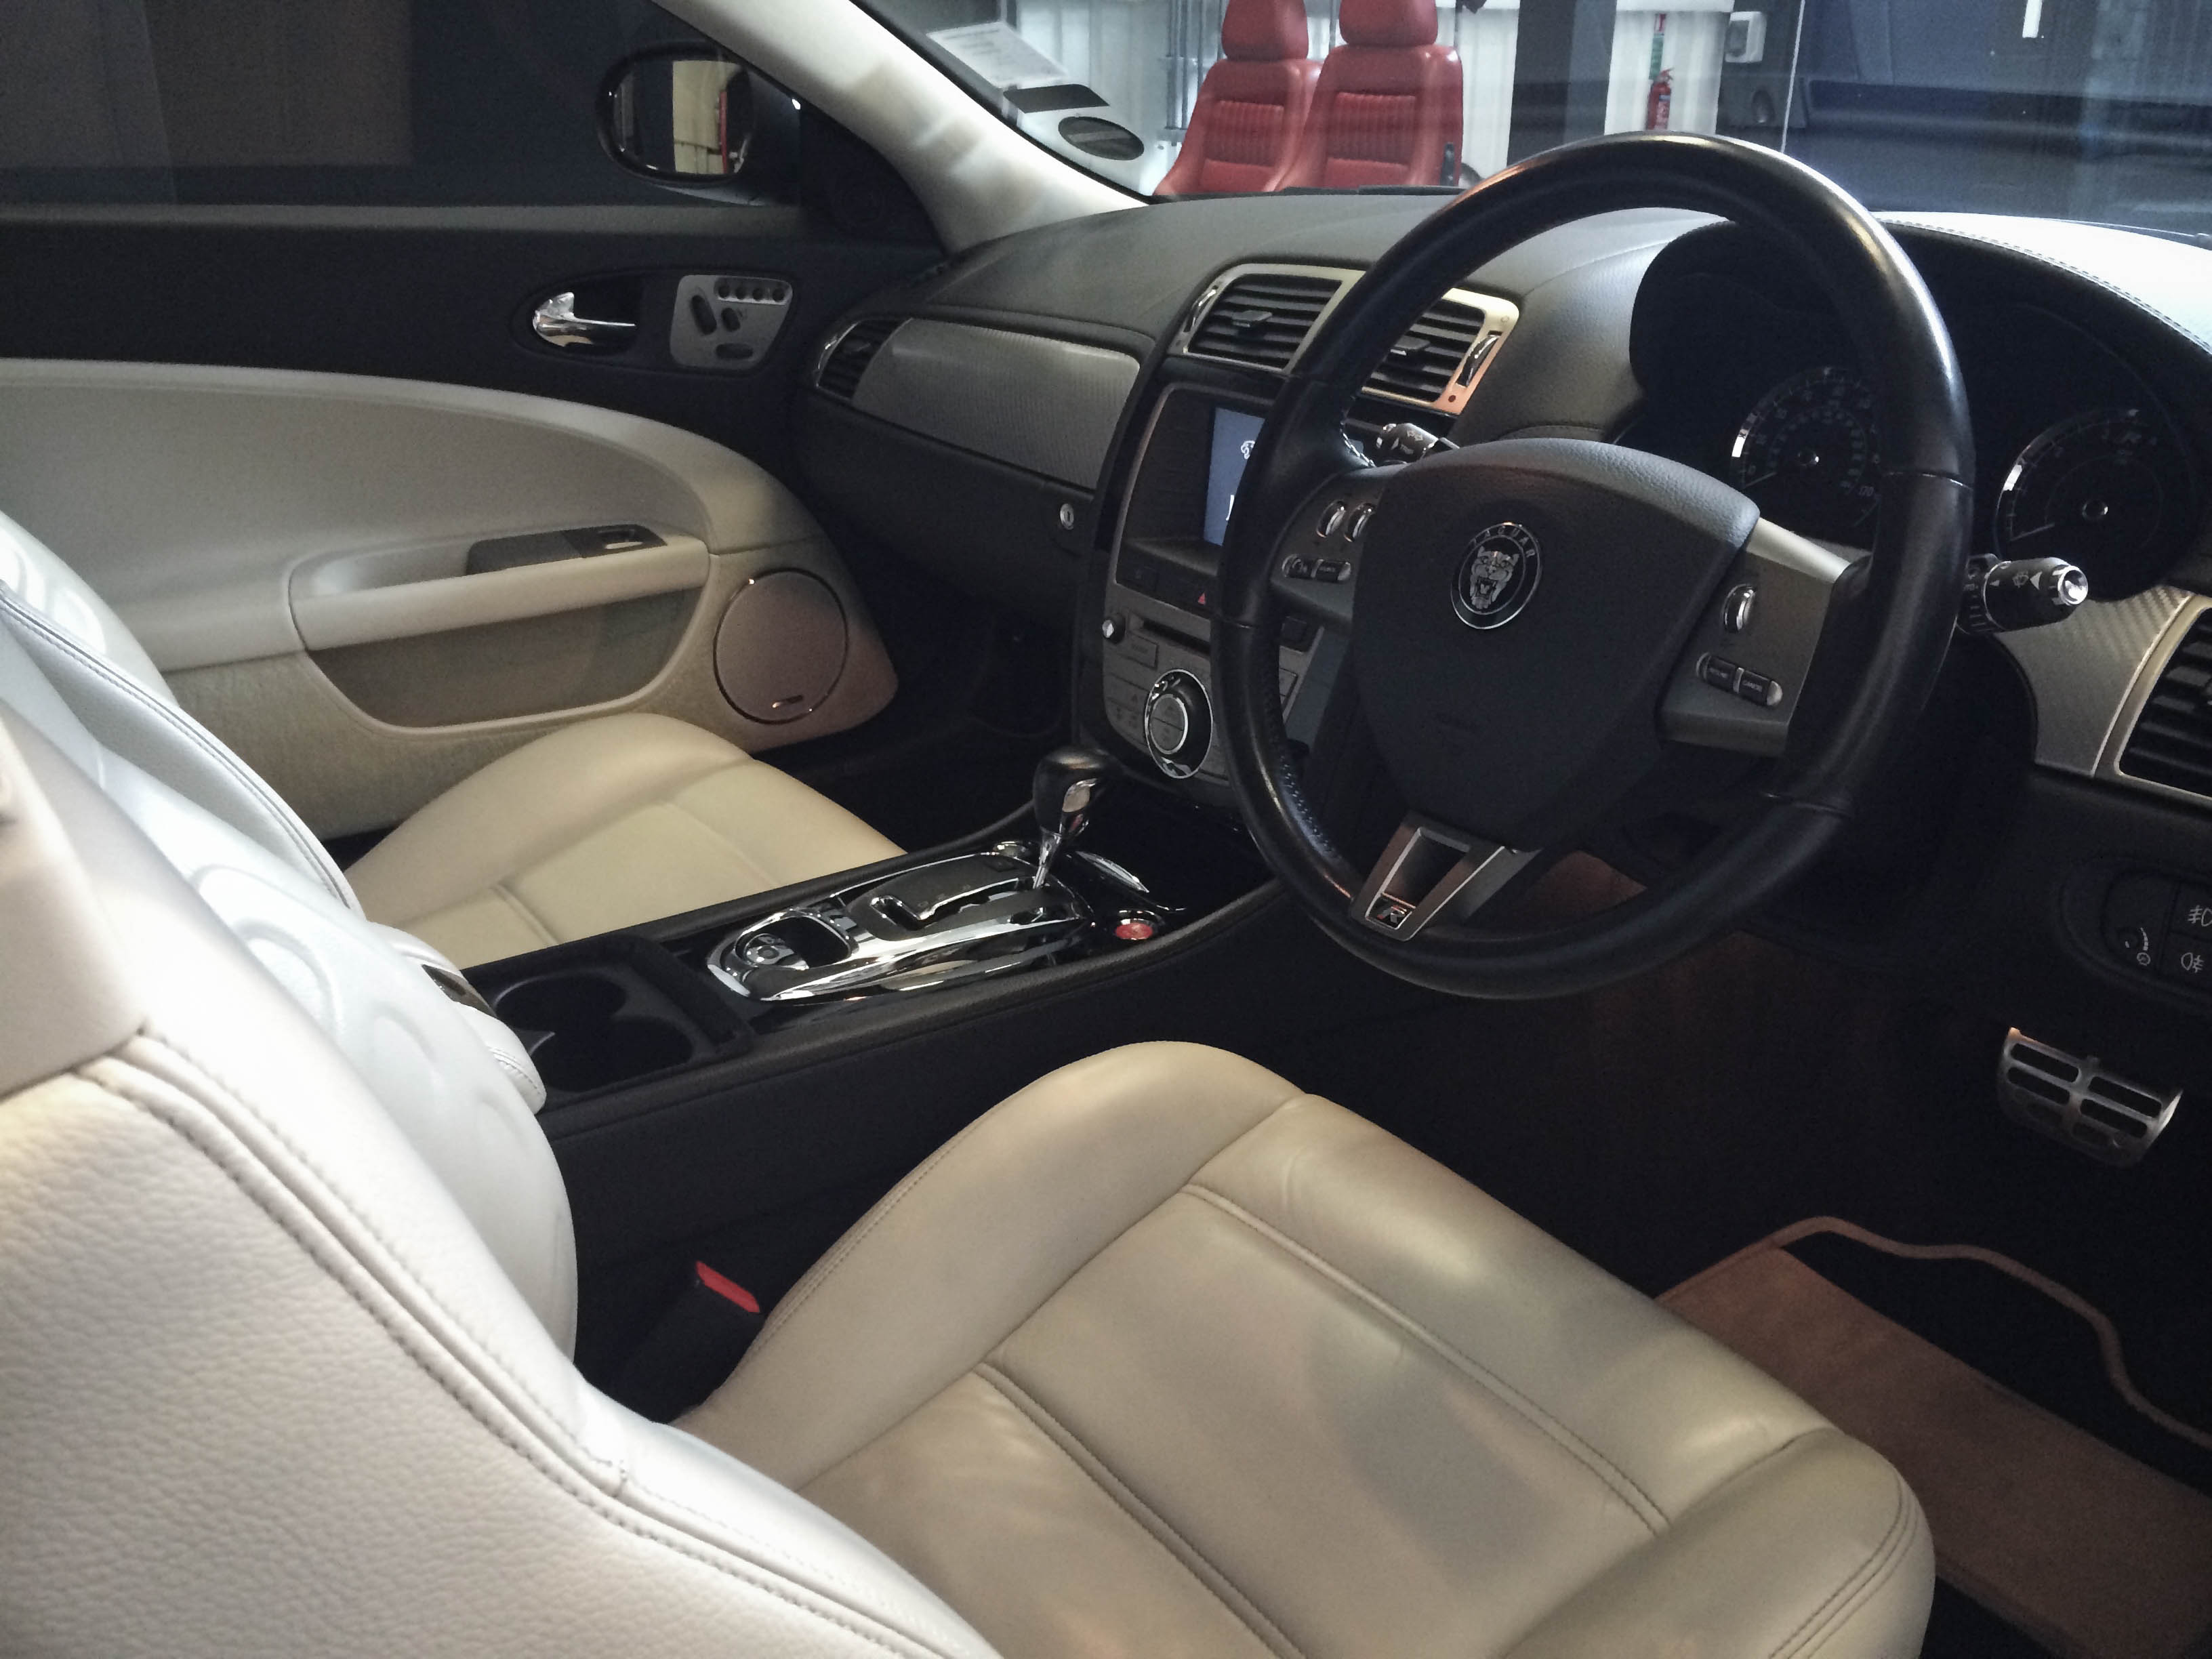 Jaguar R Coupe – Interior